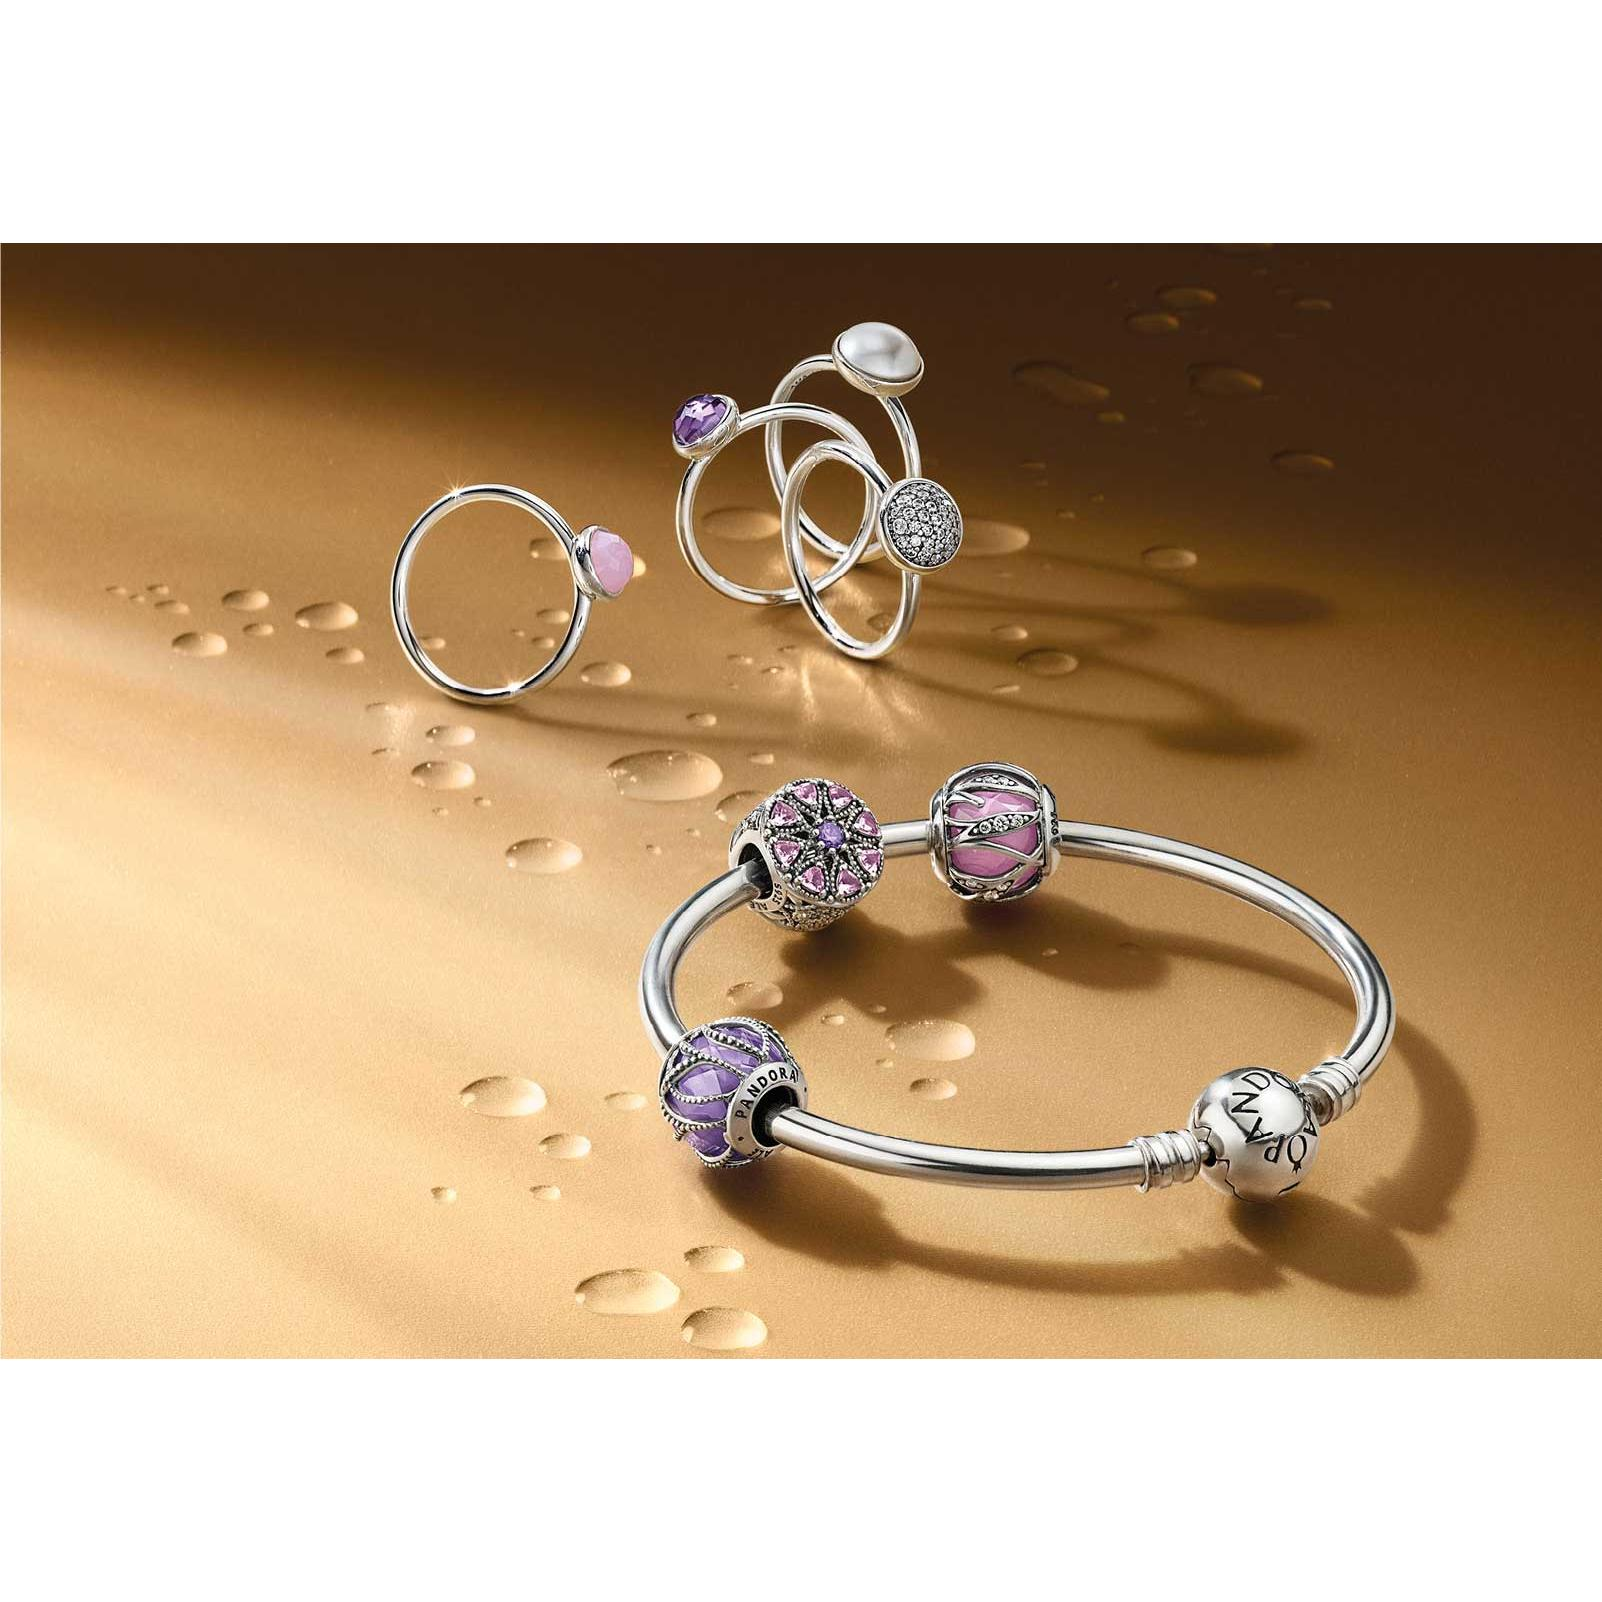 87113c86b ... the collection sees the arrival of the new petite memories locket along  with an assortment of stacking rings and and an array of versatile earring  ...